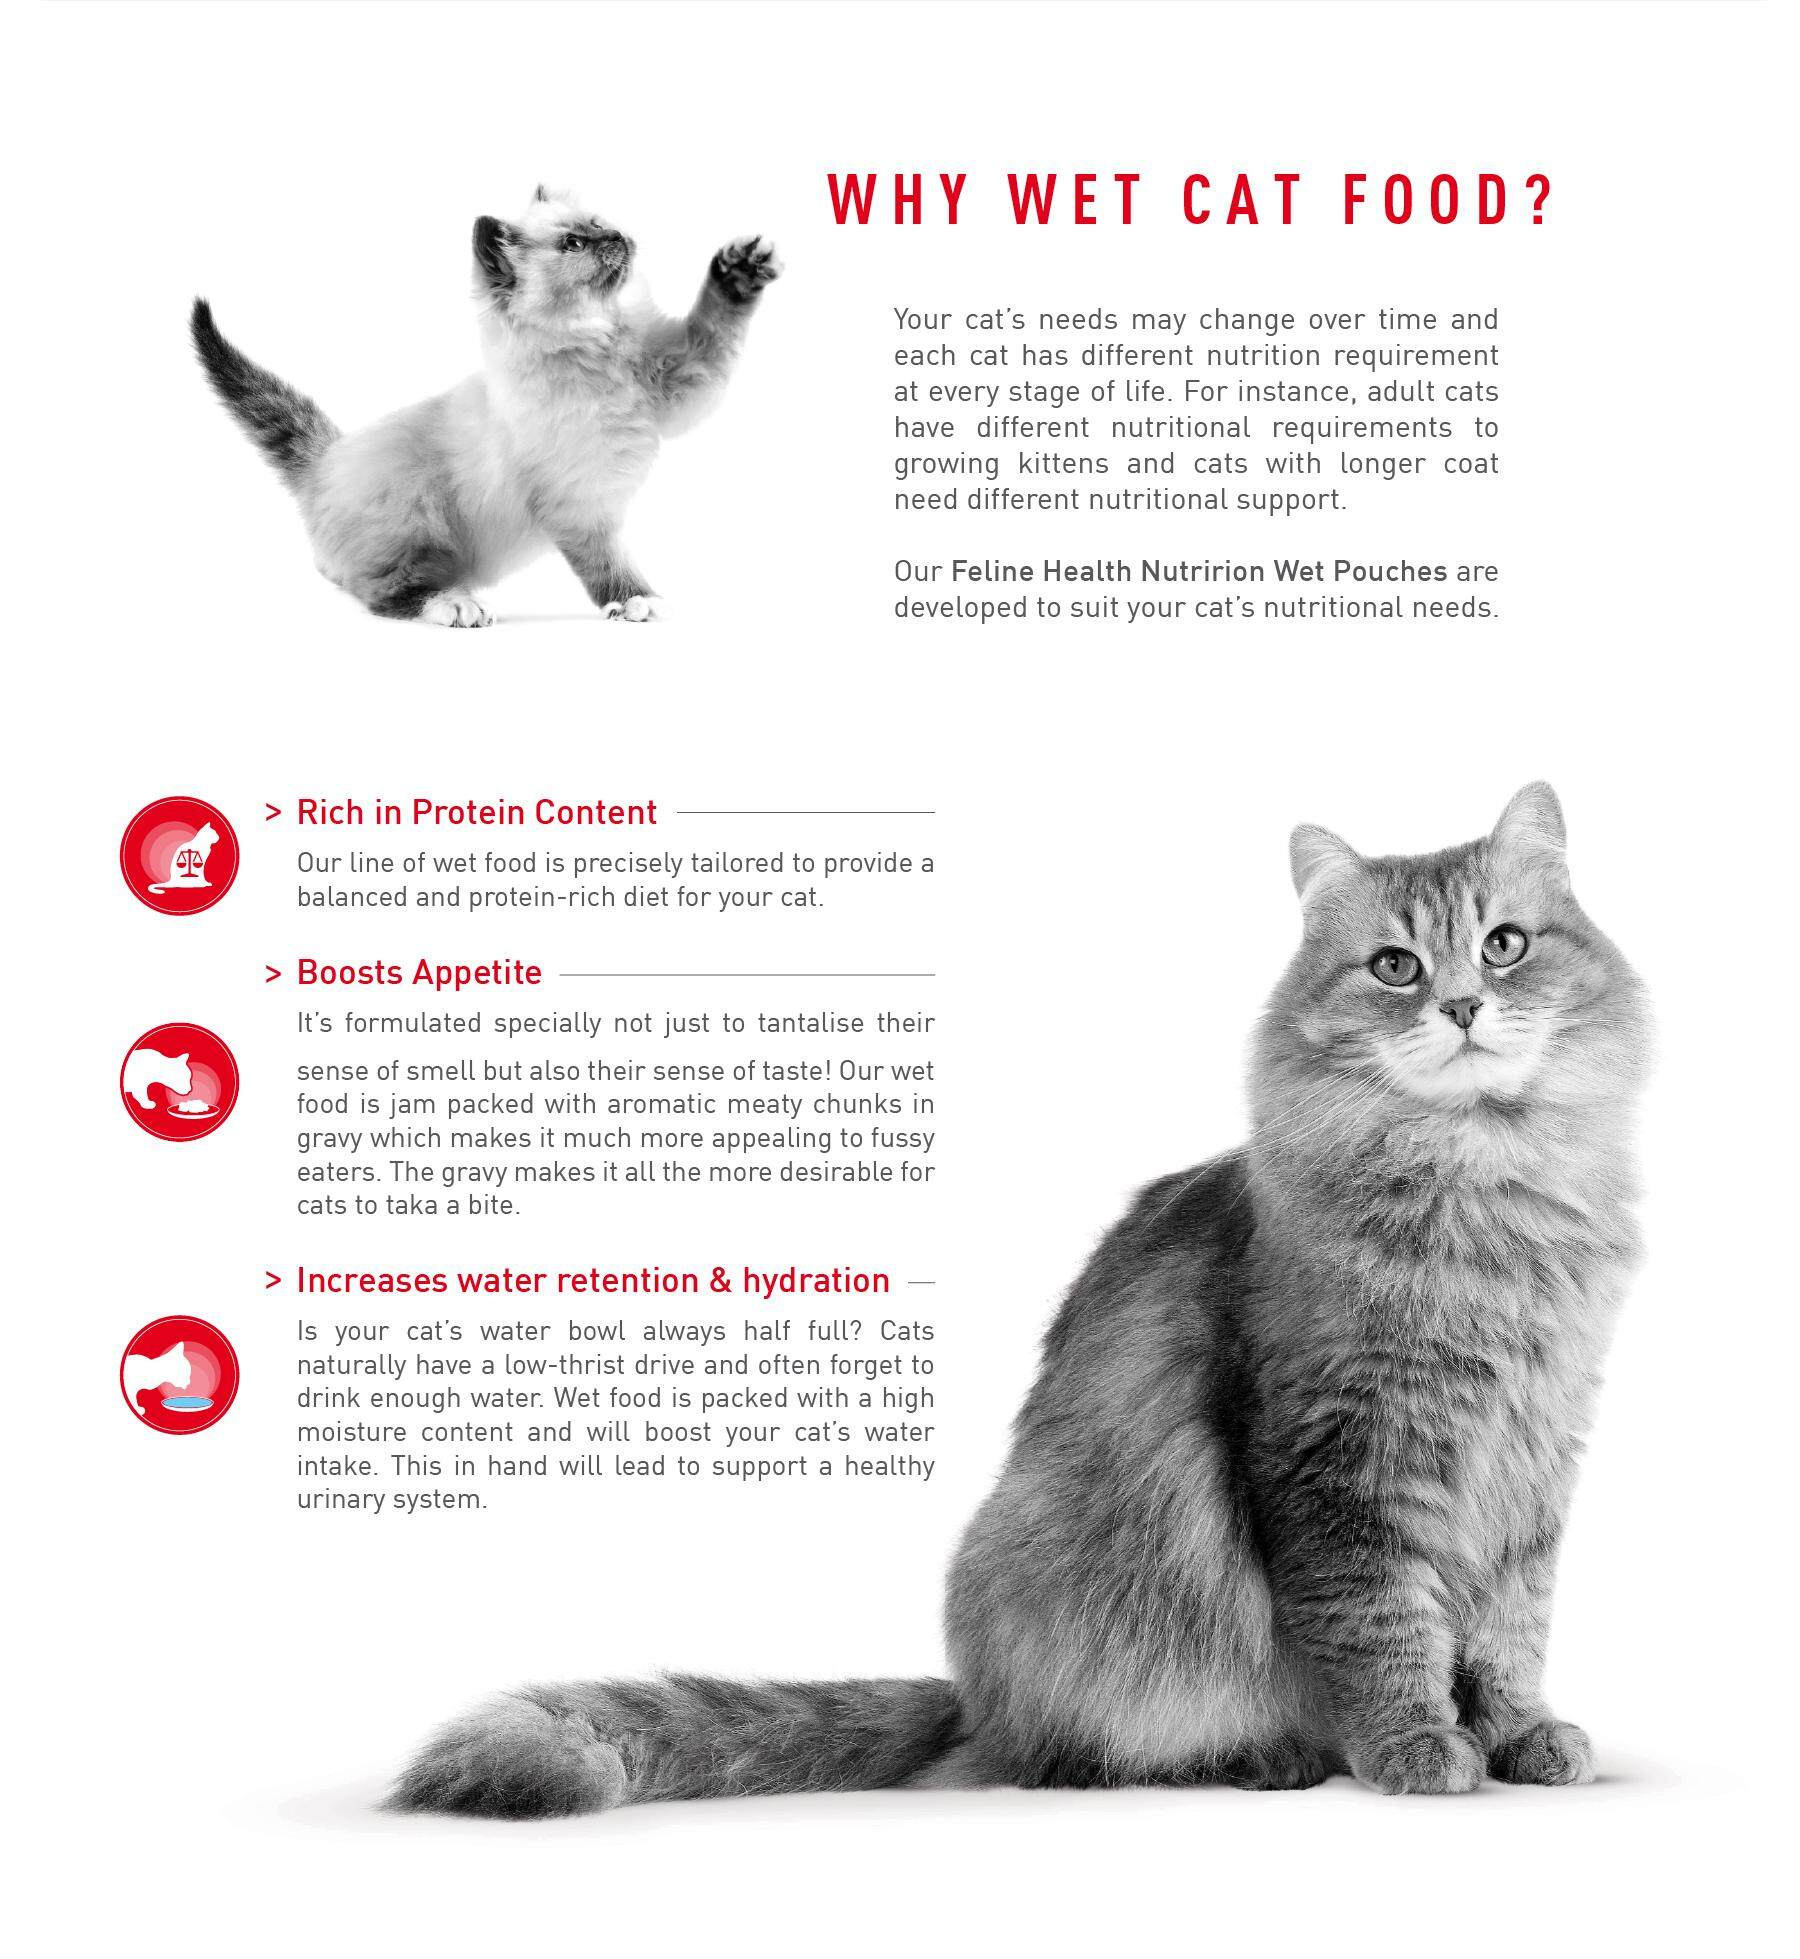 wet-launch-why-cat-food.jpg